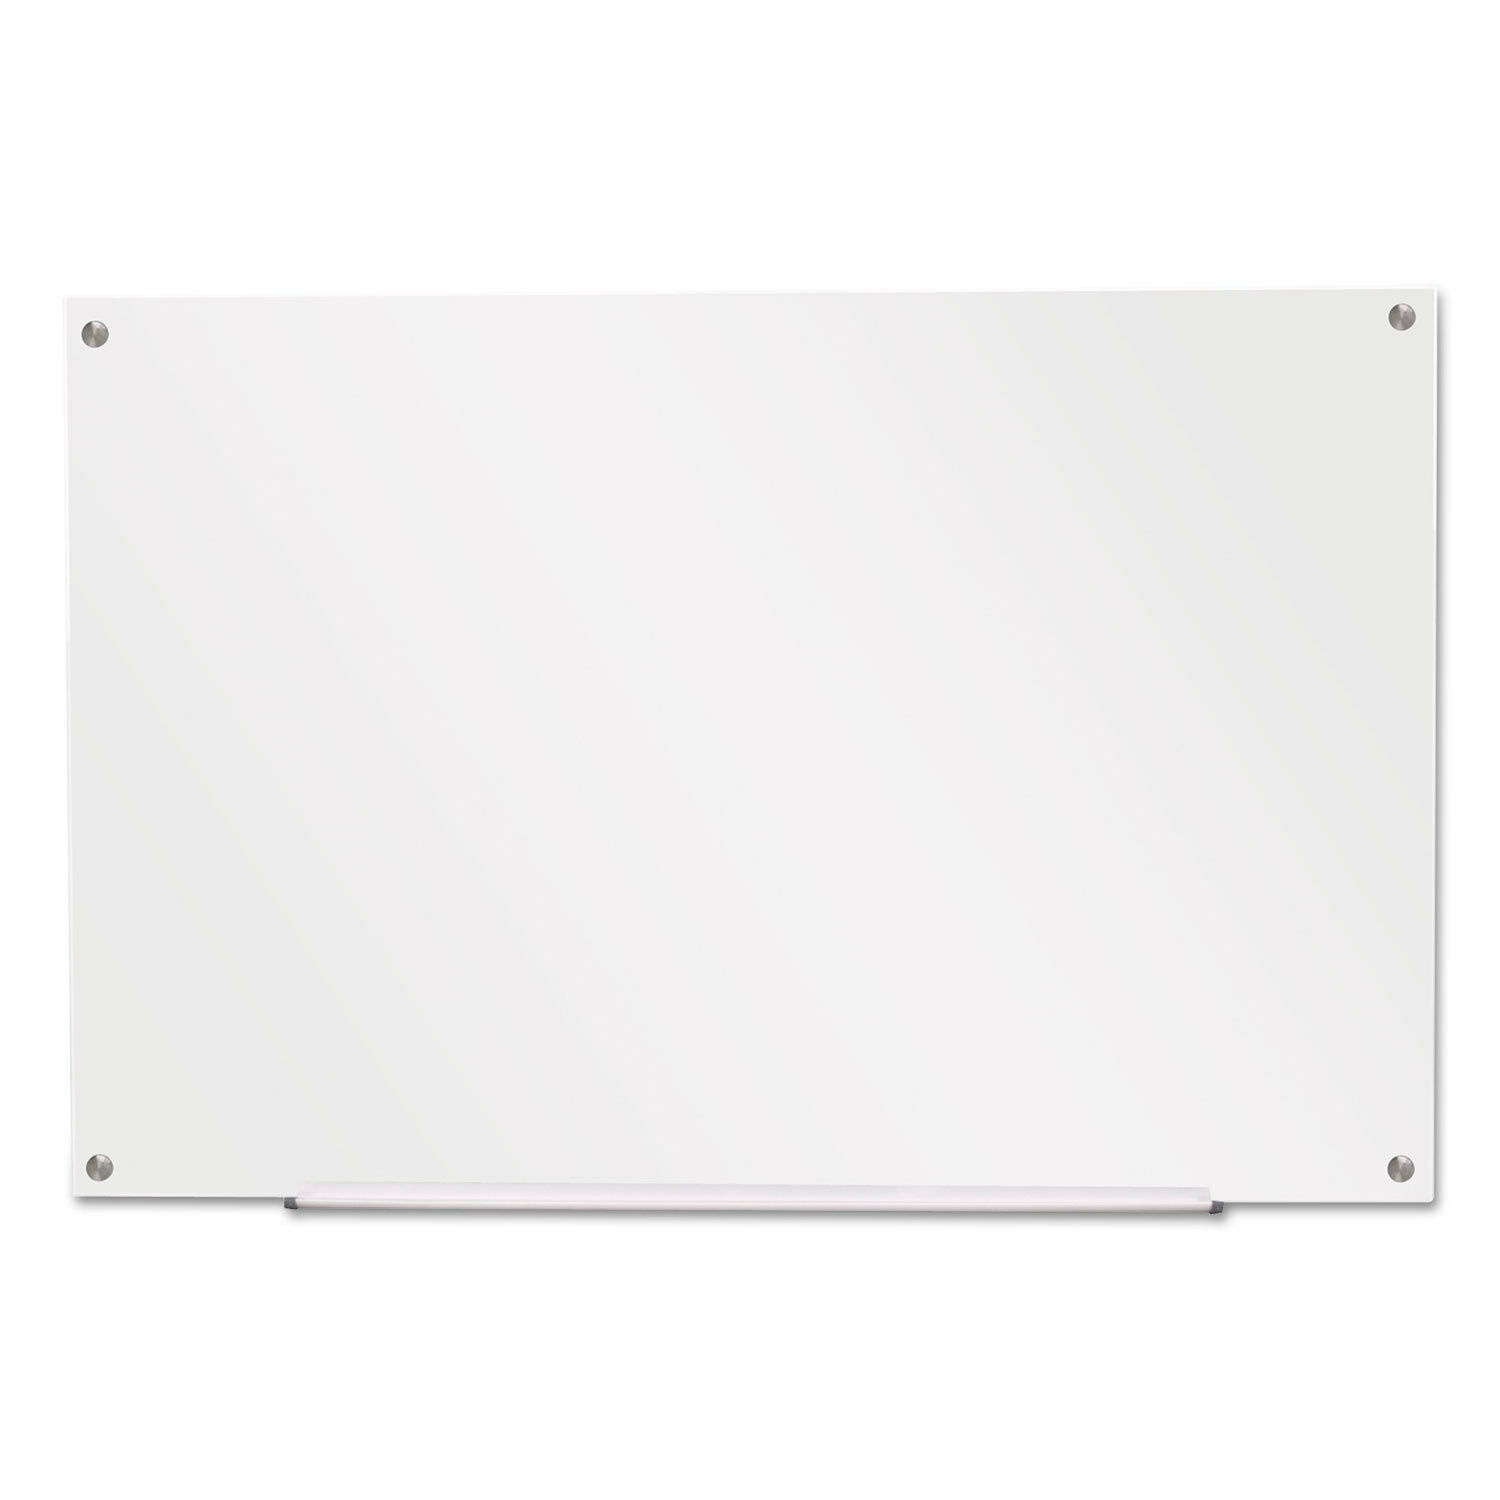 Universal Frameless Glass Marker Board 36  x 24  White 43232